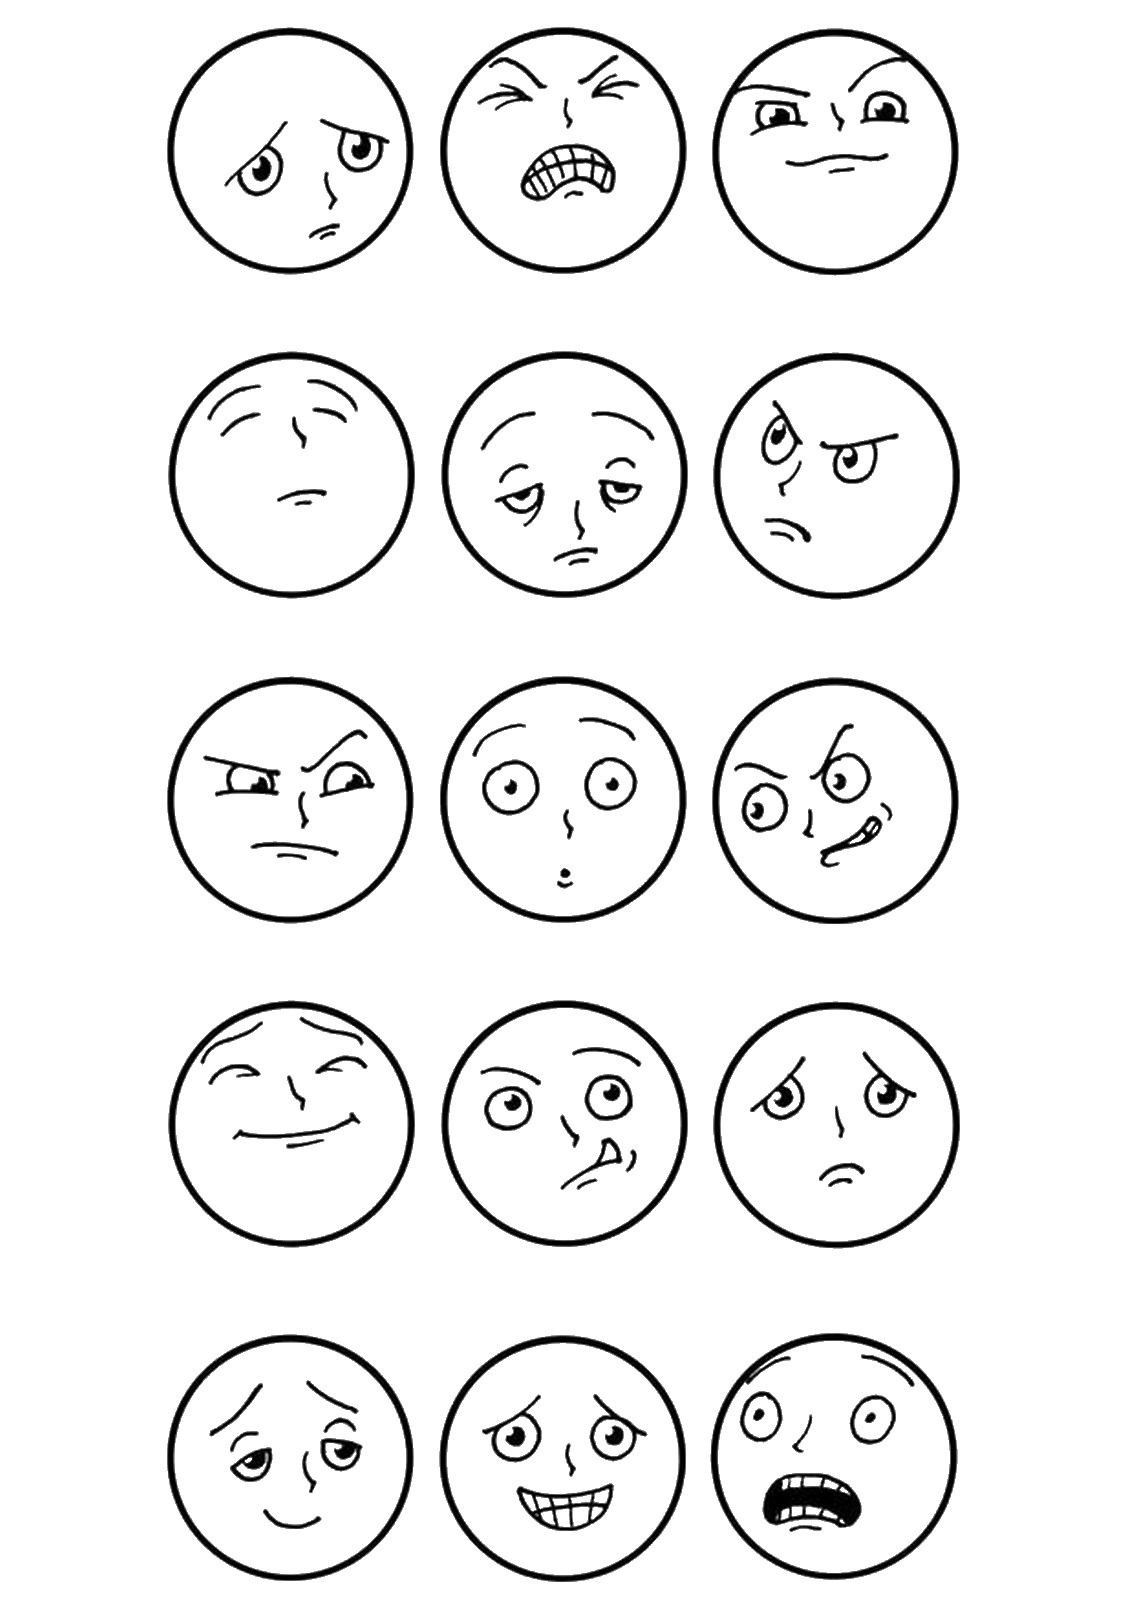 Coloring Pages Emotions Printable Coloring Pages Emotions Feelings And Emotions